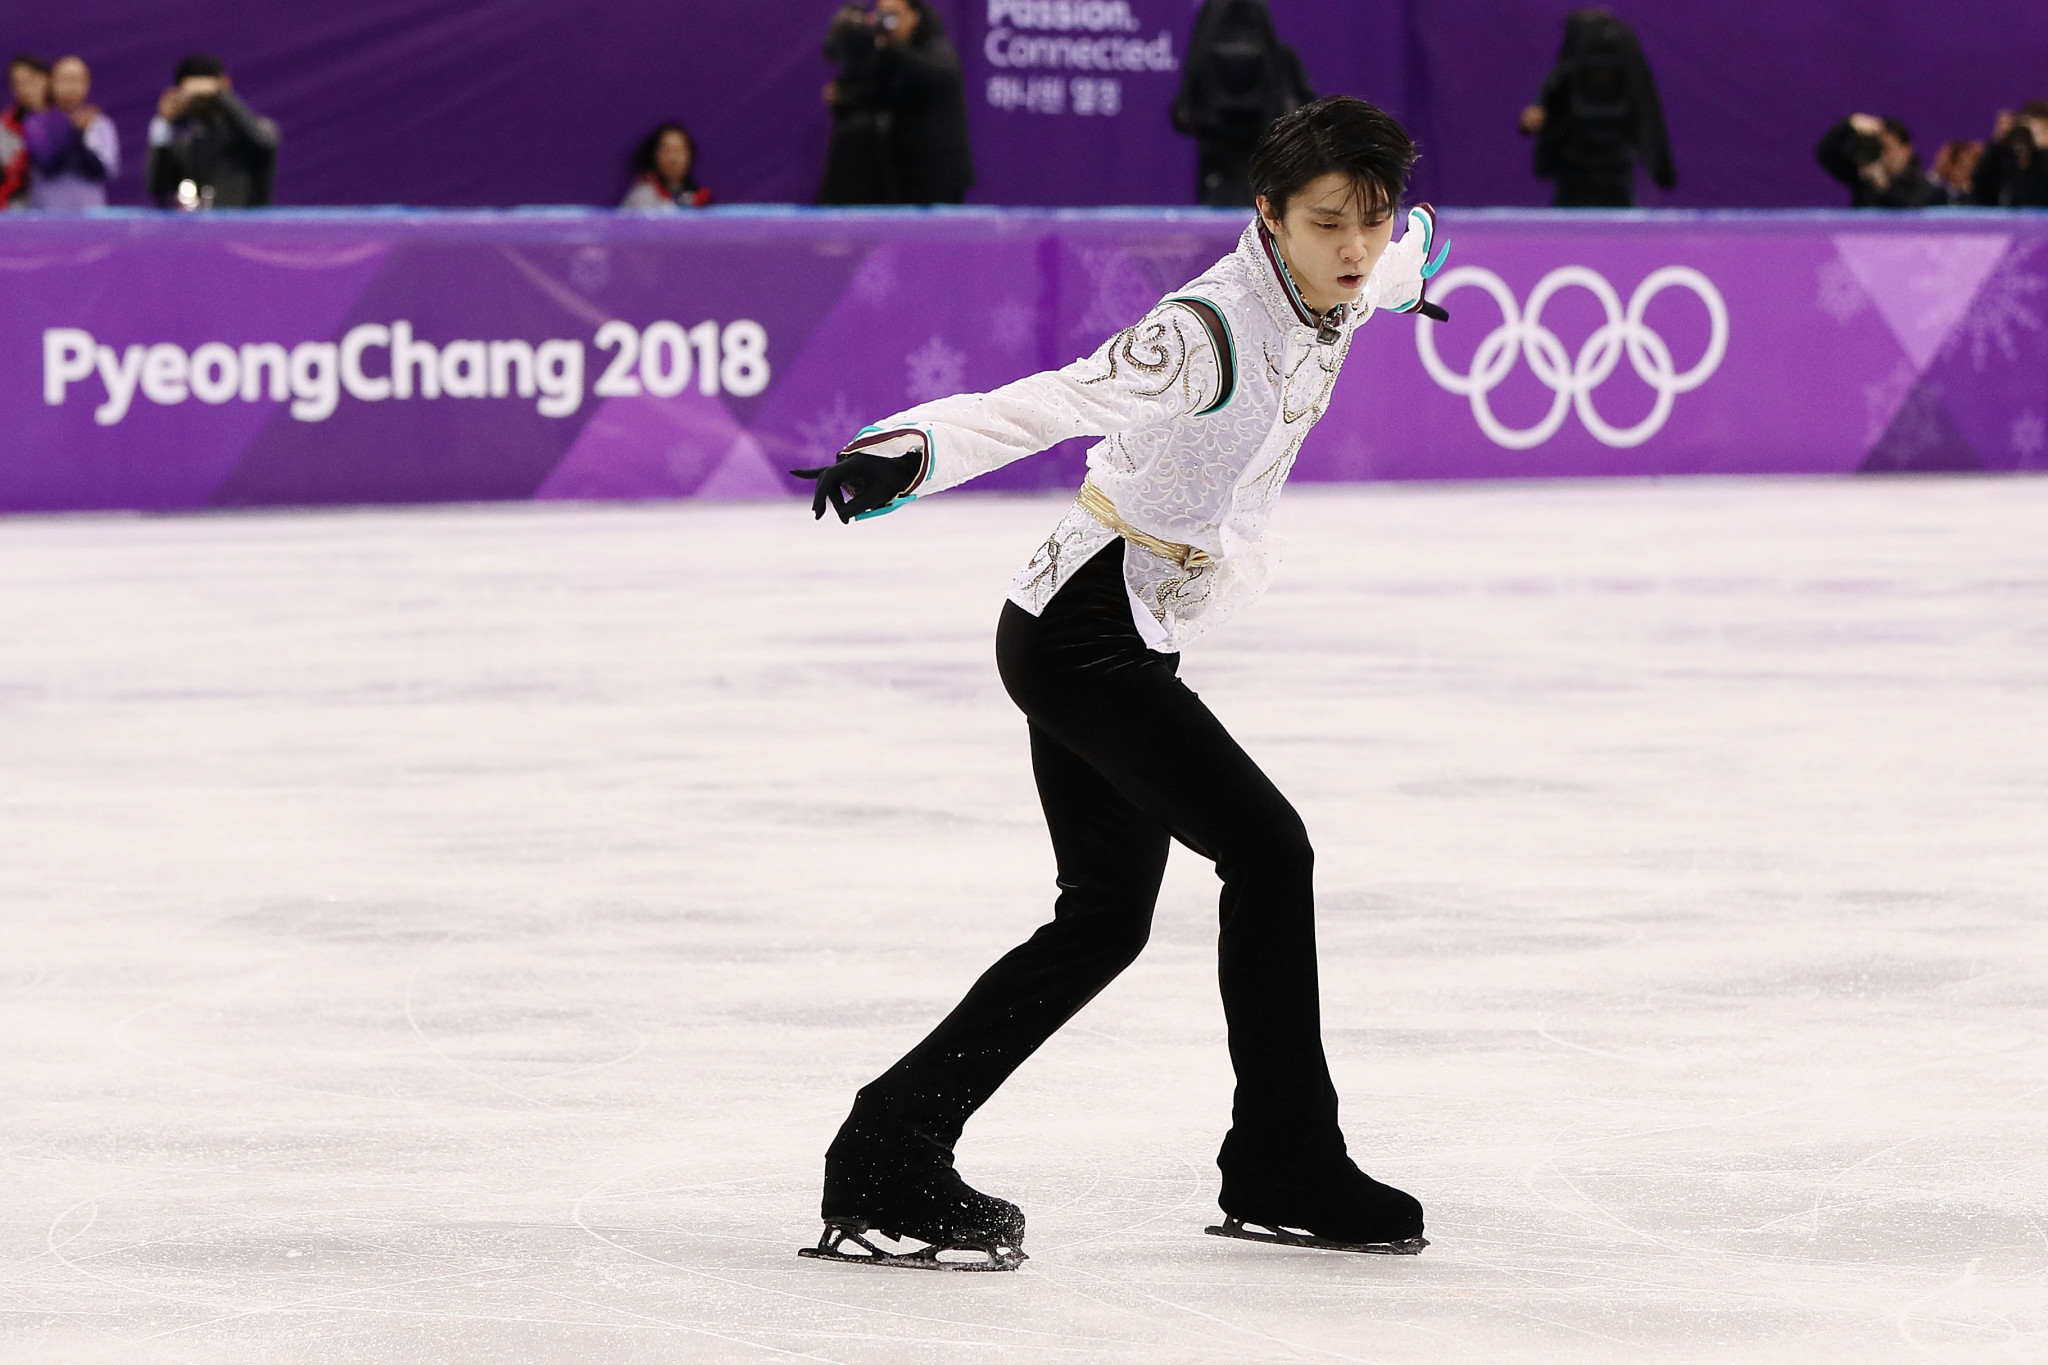 History maker Hanyu set to skate for first time since winning second Olympic gold medal at Pyeongchang 2018